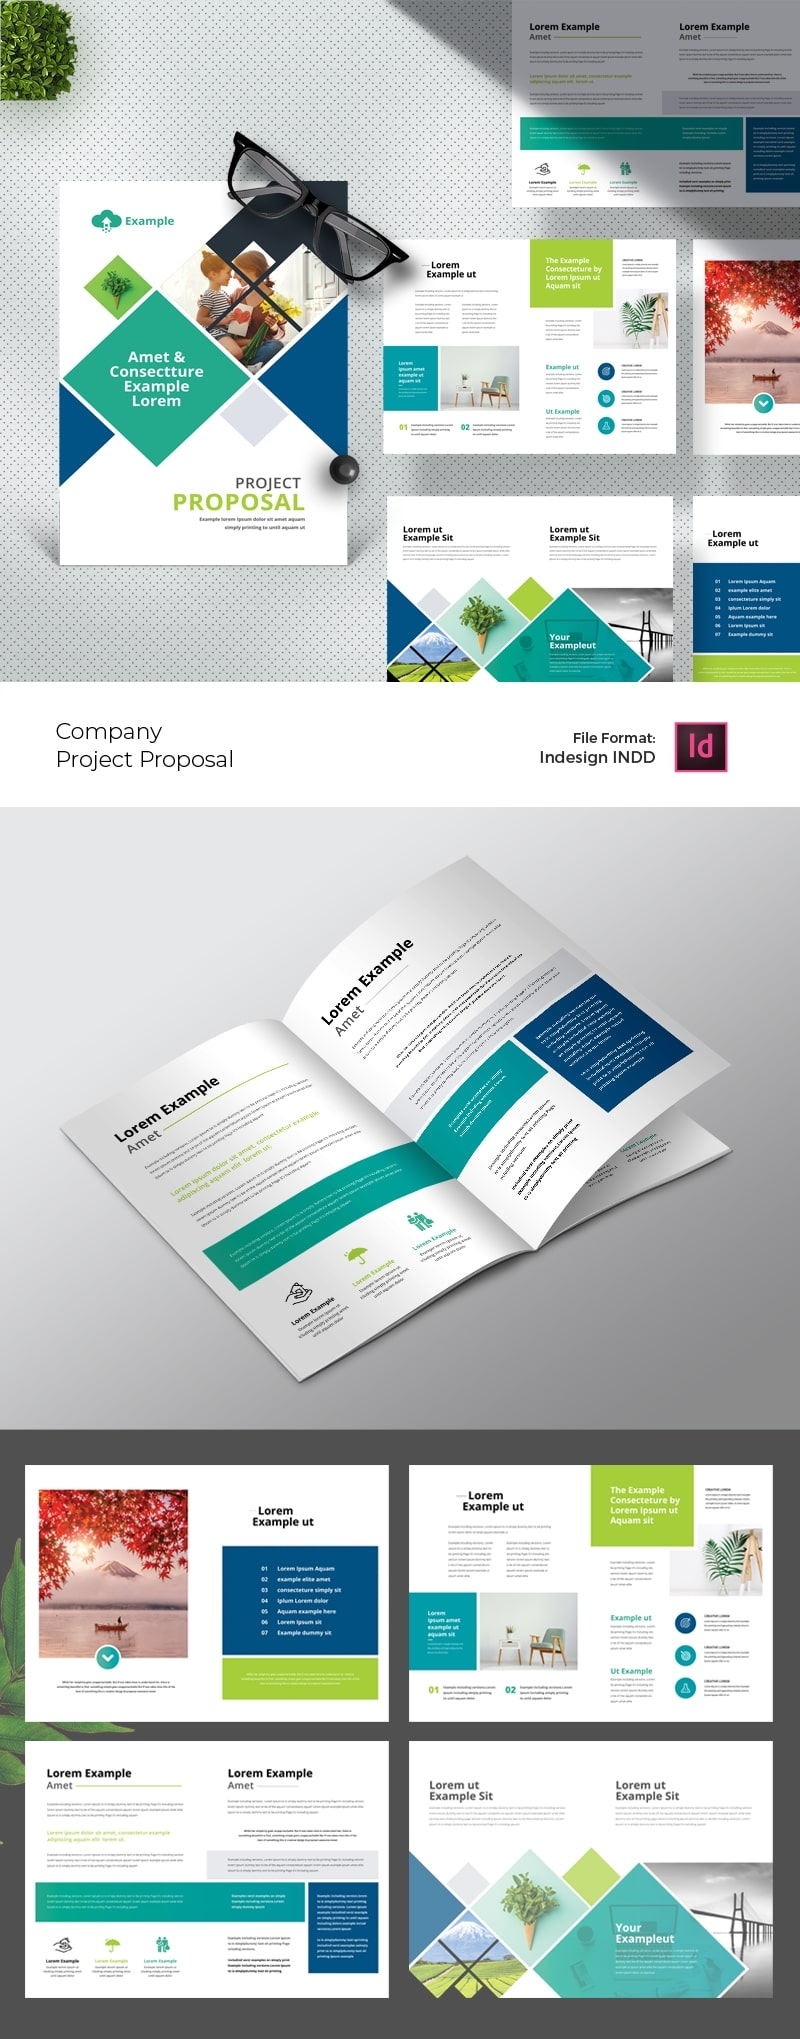 Company Project Proposal Layout with Paste Accent